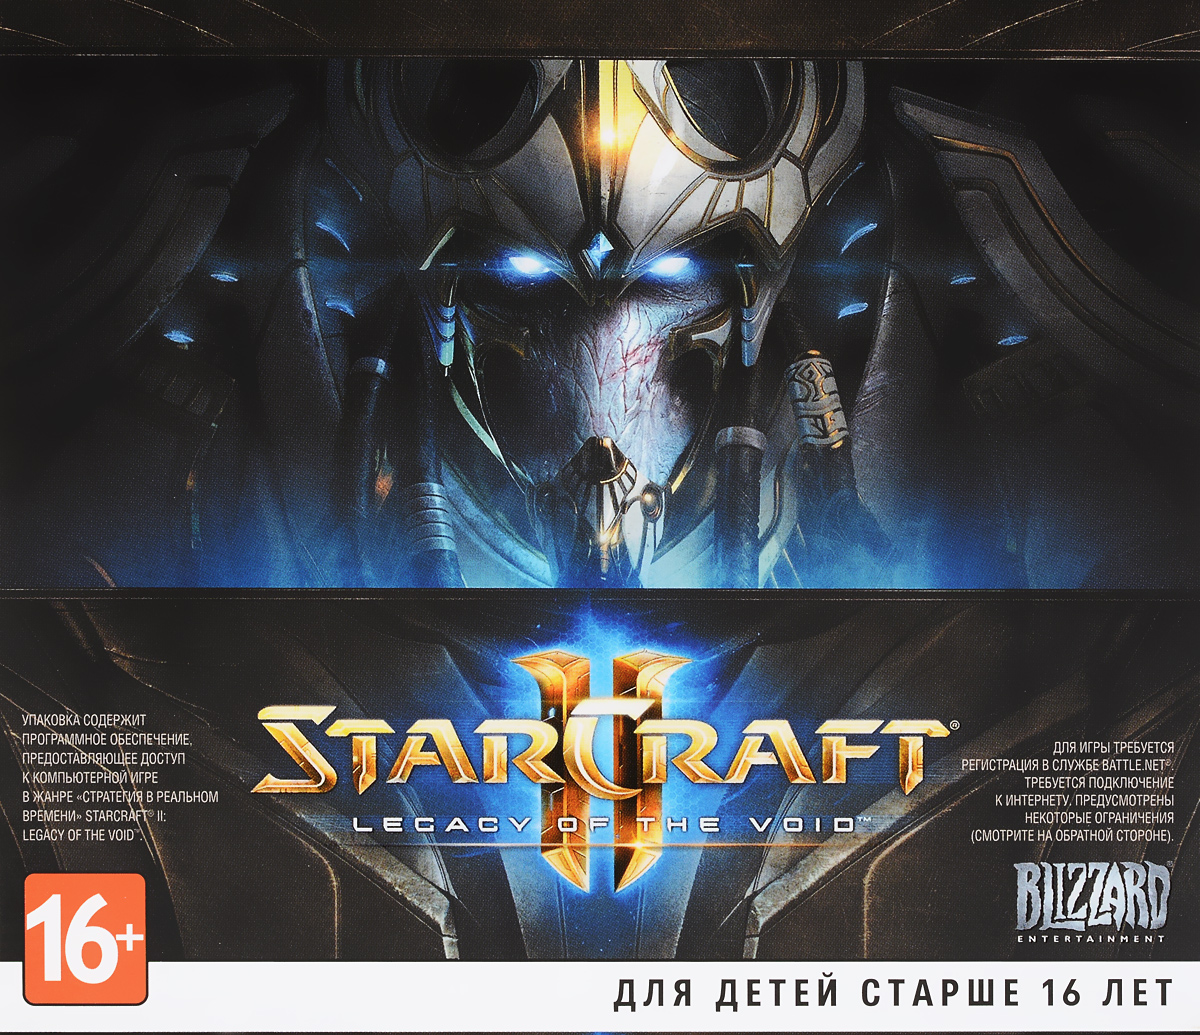 izmeritelplus.ru Starcraft II: Legacy Of The Void (2 DVD Jewel)